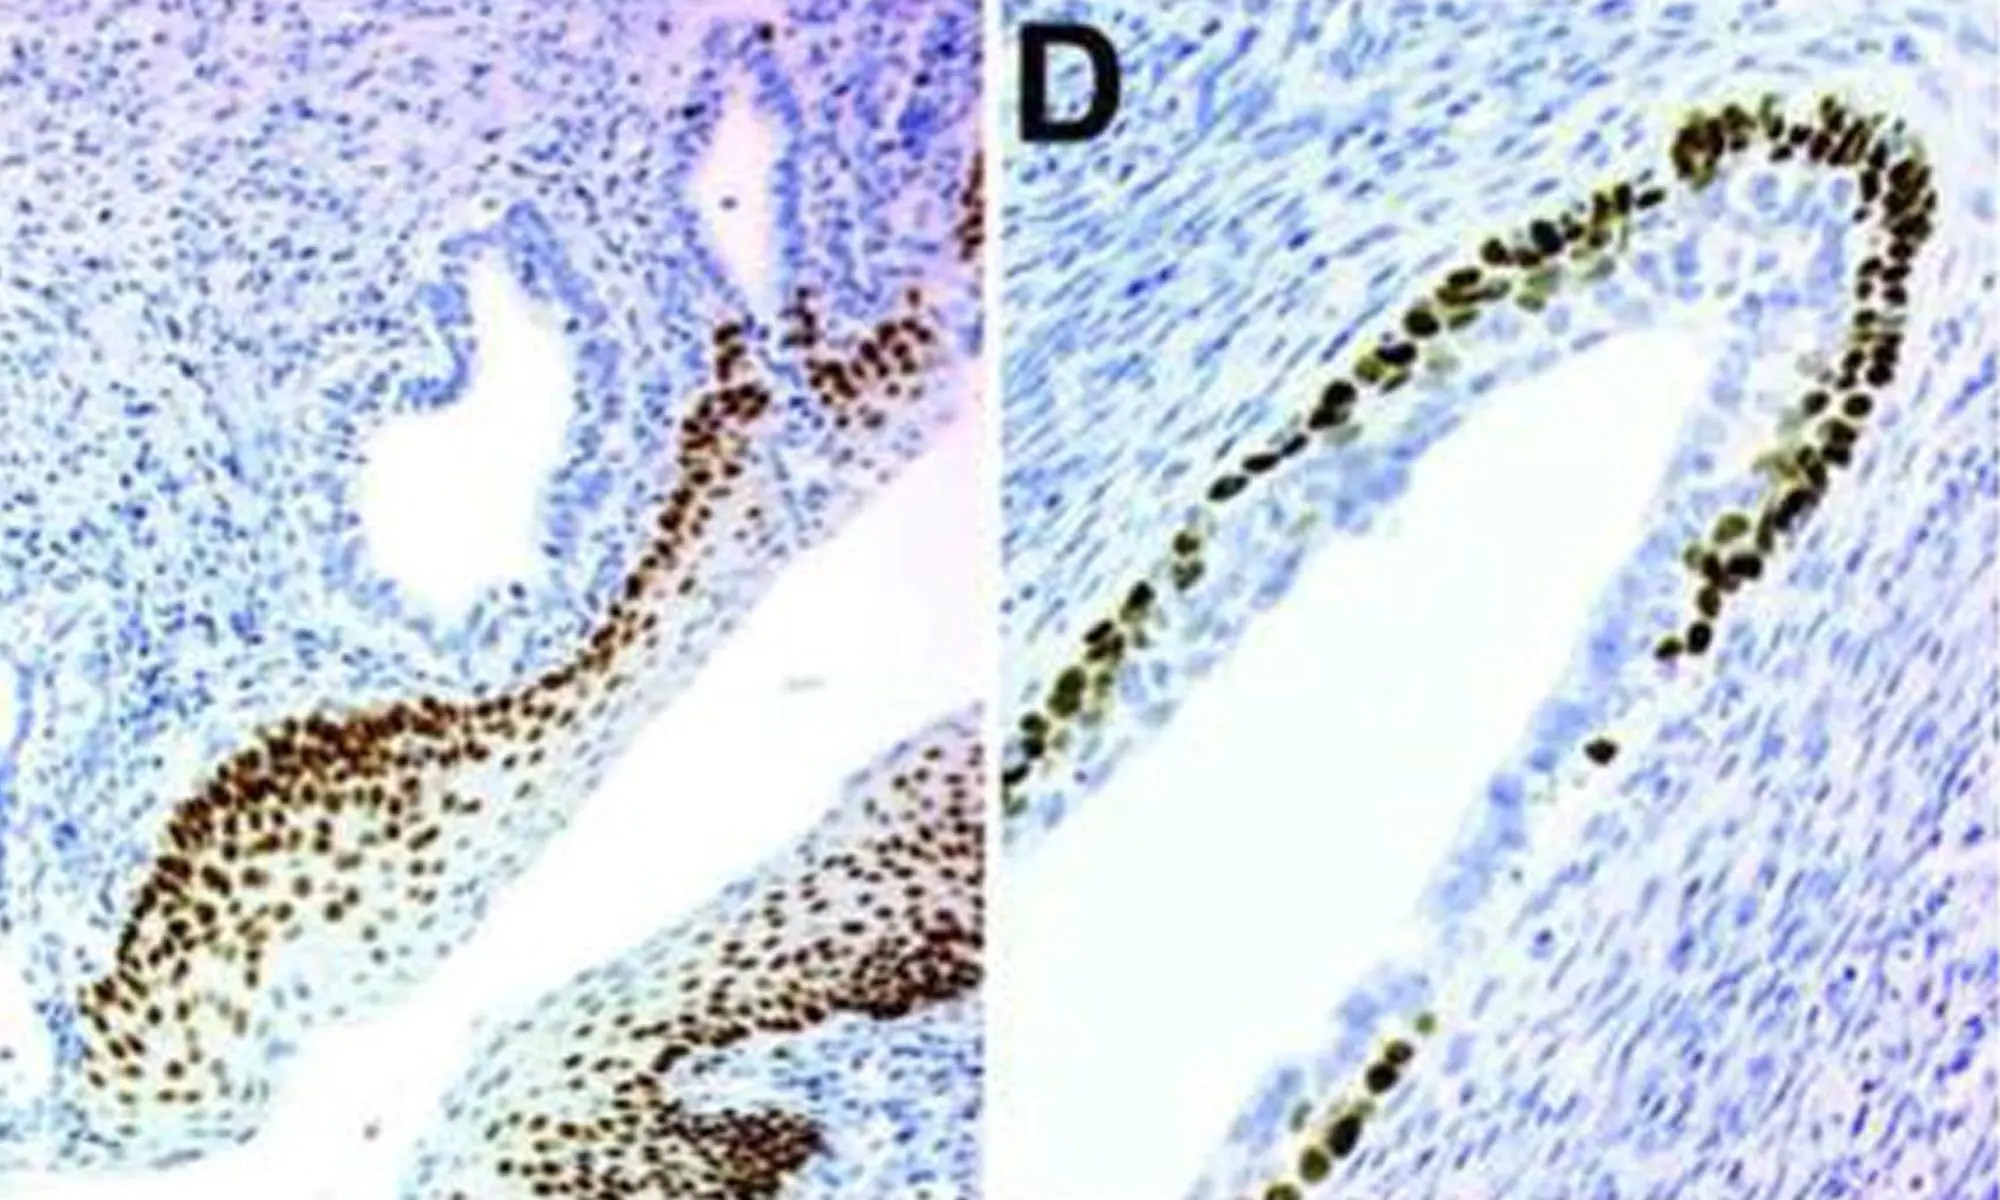 image of TRP63 in the vaginae of C57BL6 adult (P60) mice injected with DES